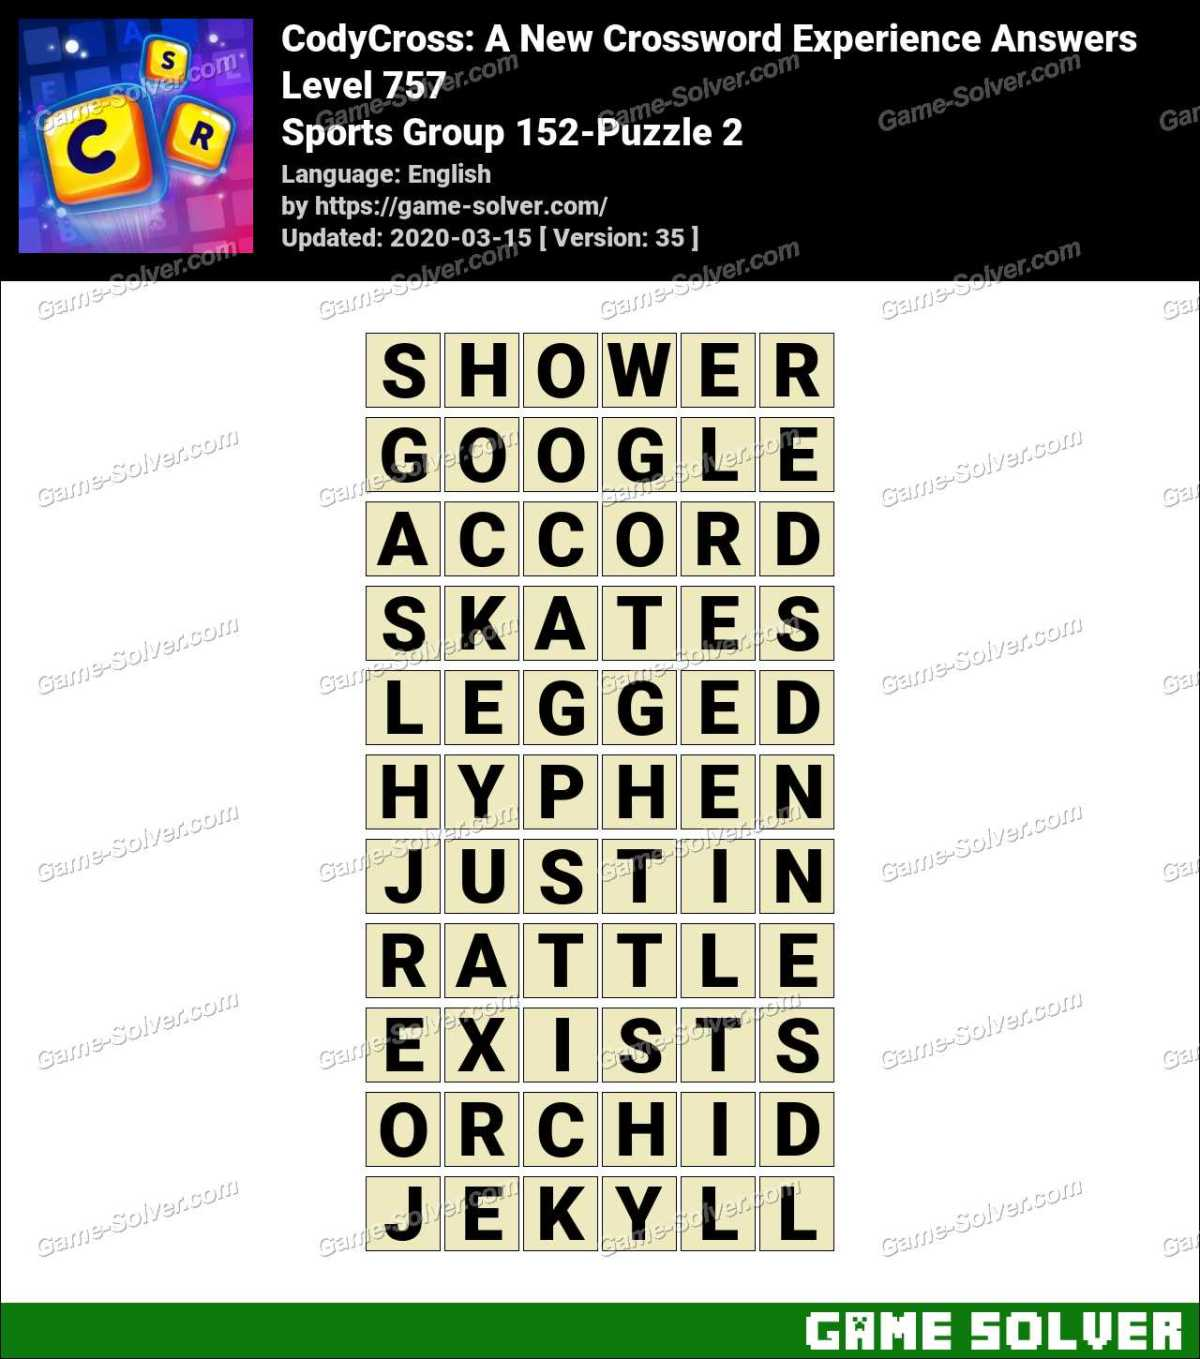 CodyCross Sports Group 152-Puzzle 2 Answers